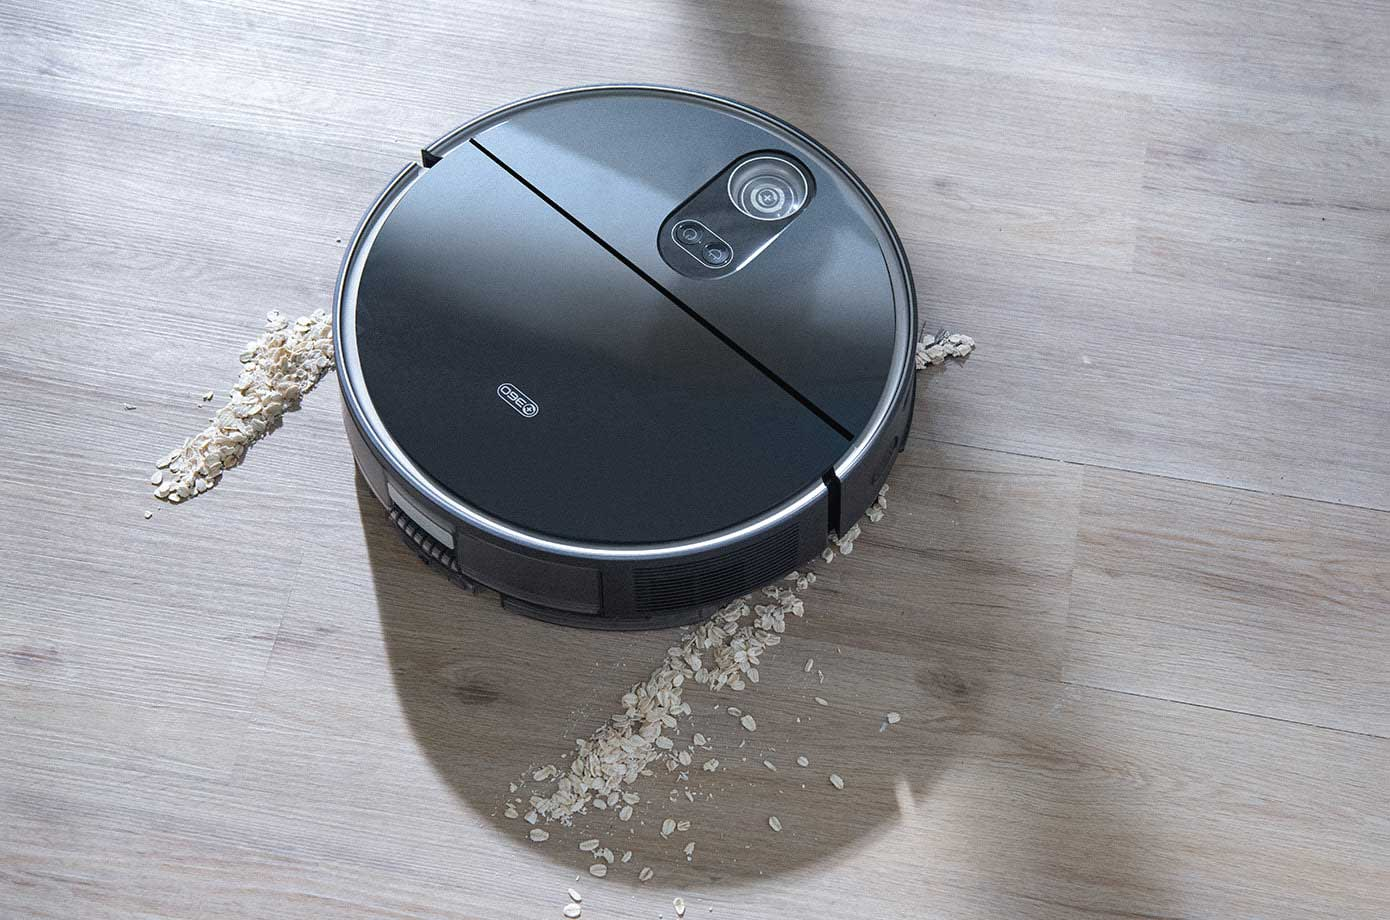 360 Robot Vacuum Cleaner Being Used